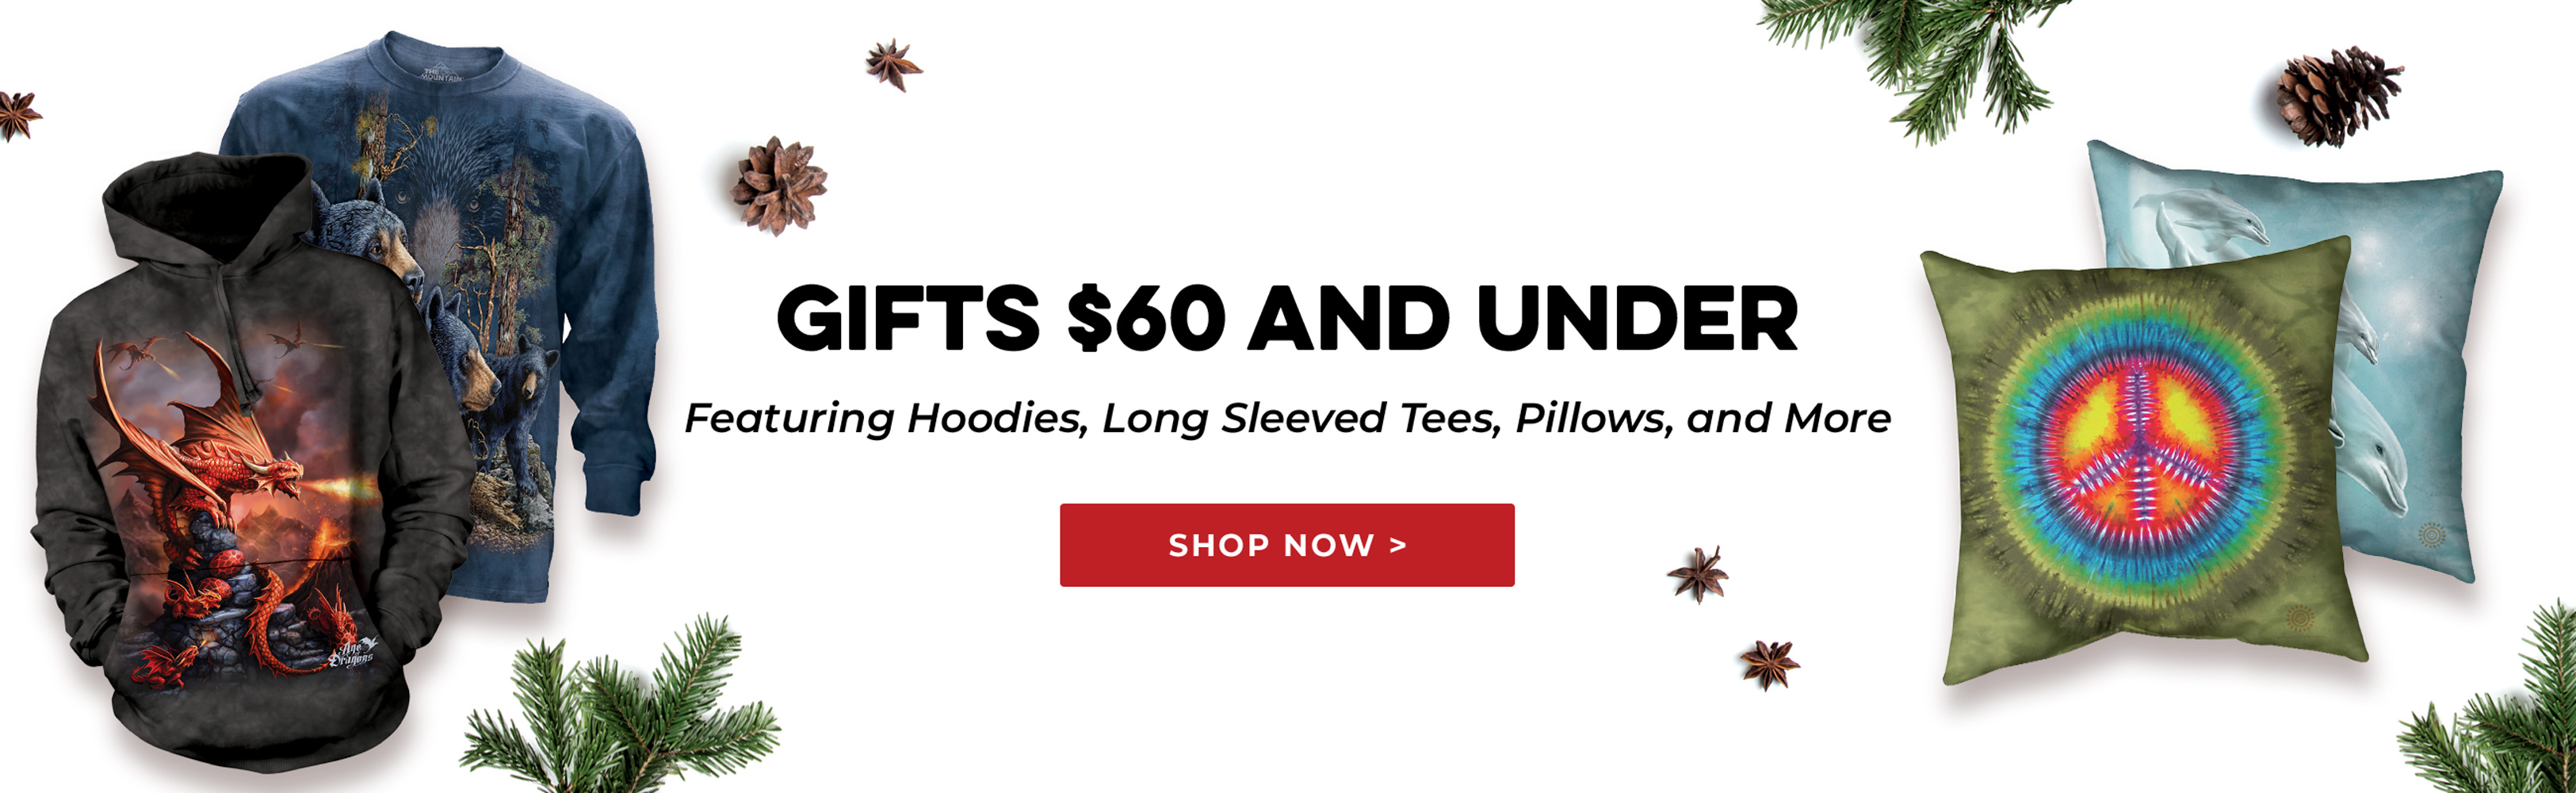 Gifts $60 and Under